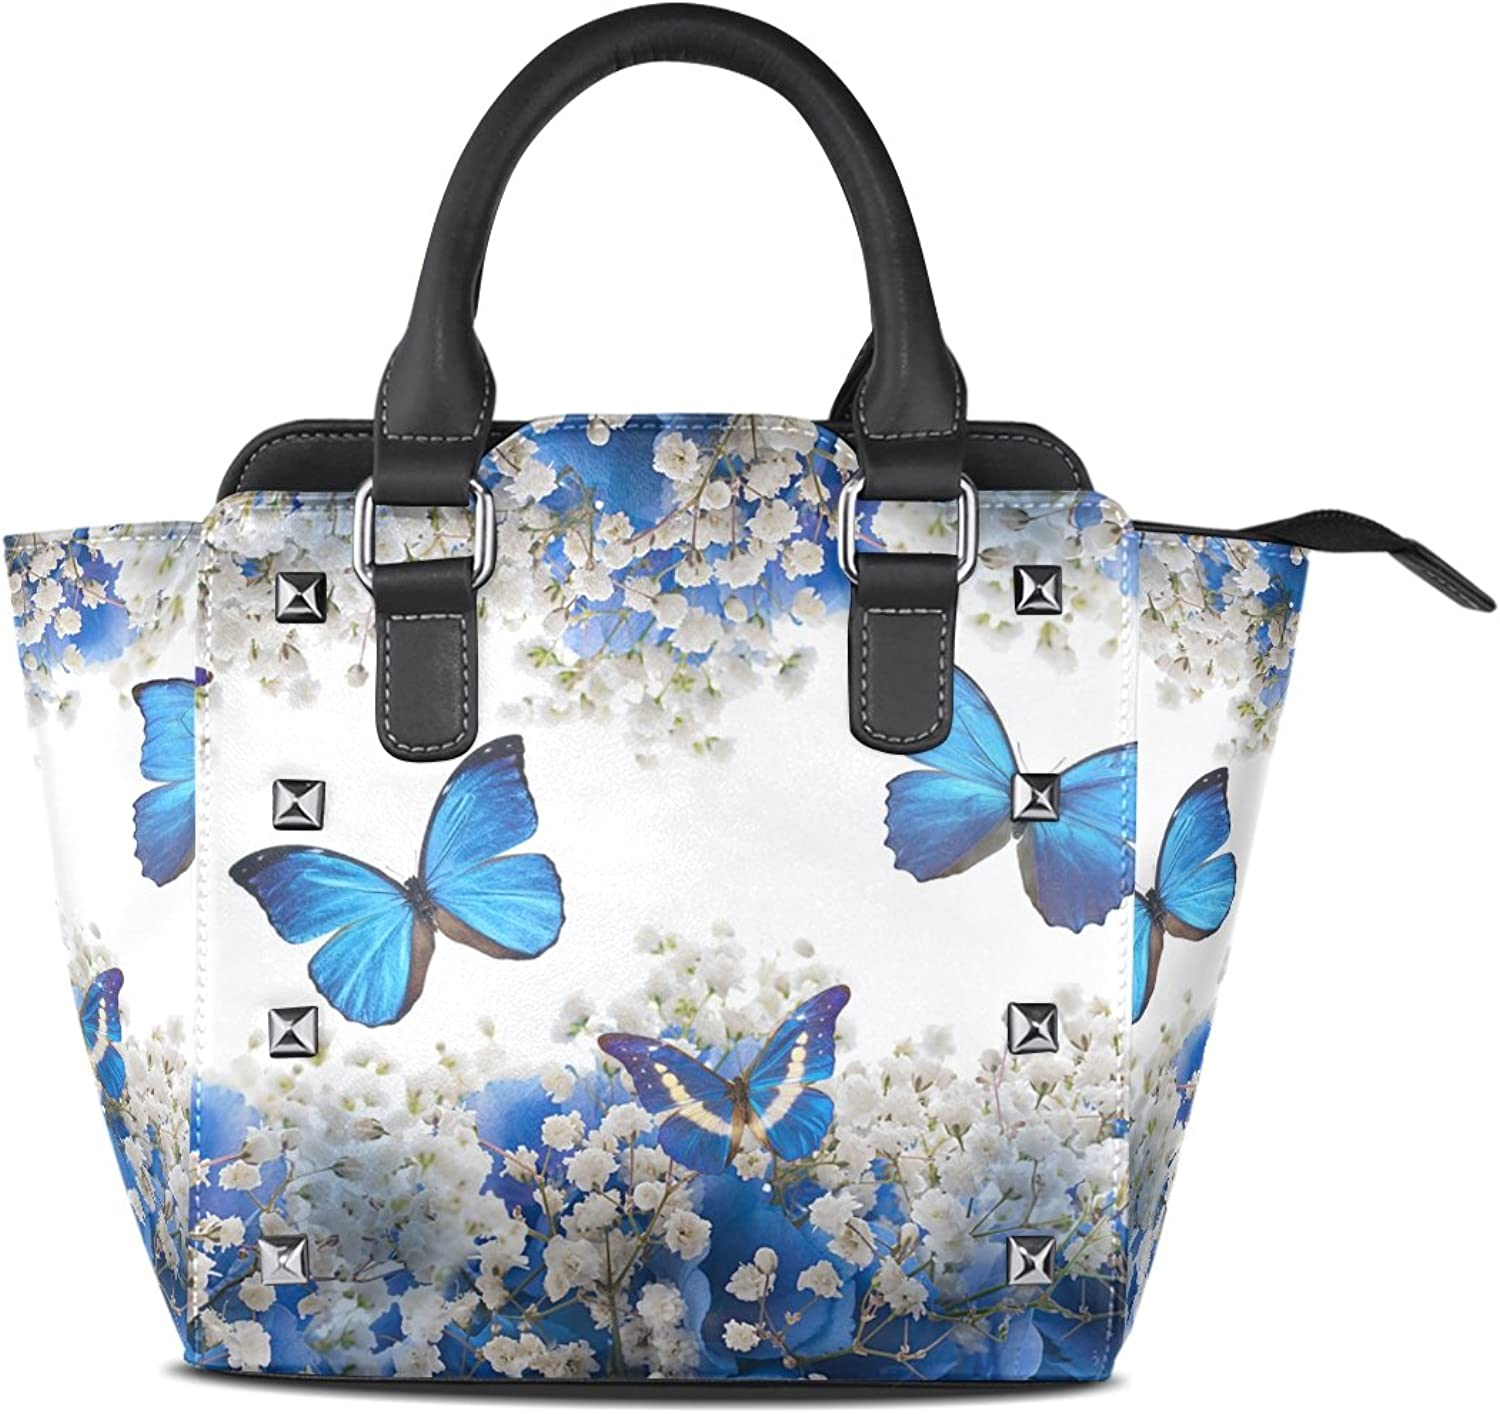 Sunlome Retro Butterfly Floral Print Women's Leather Tote Shoulder Bags Handbags